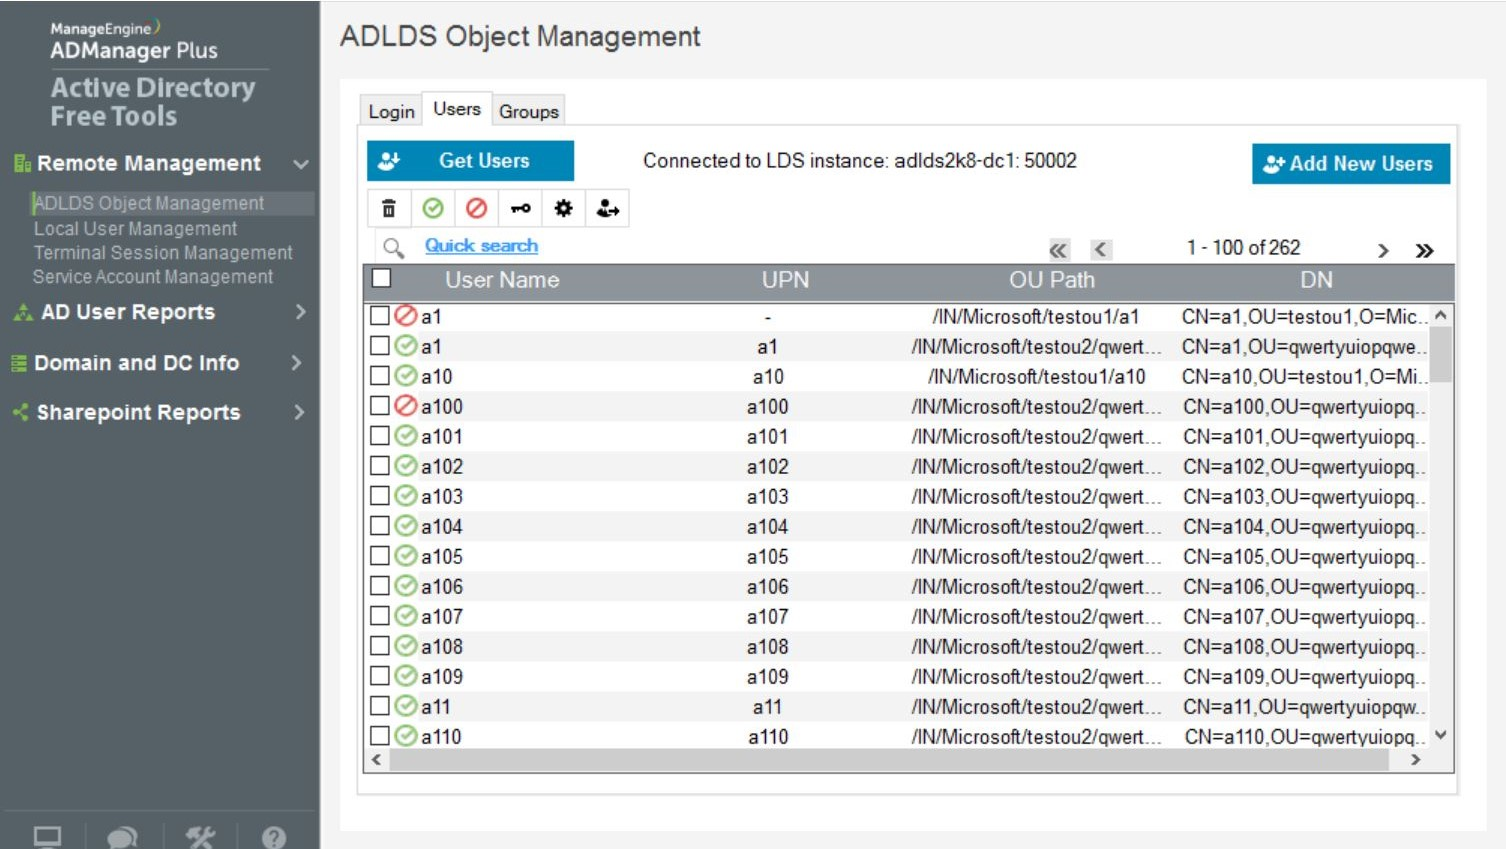 Manage AD LDS users